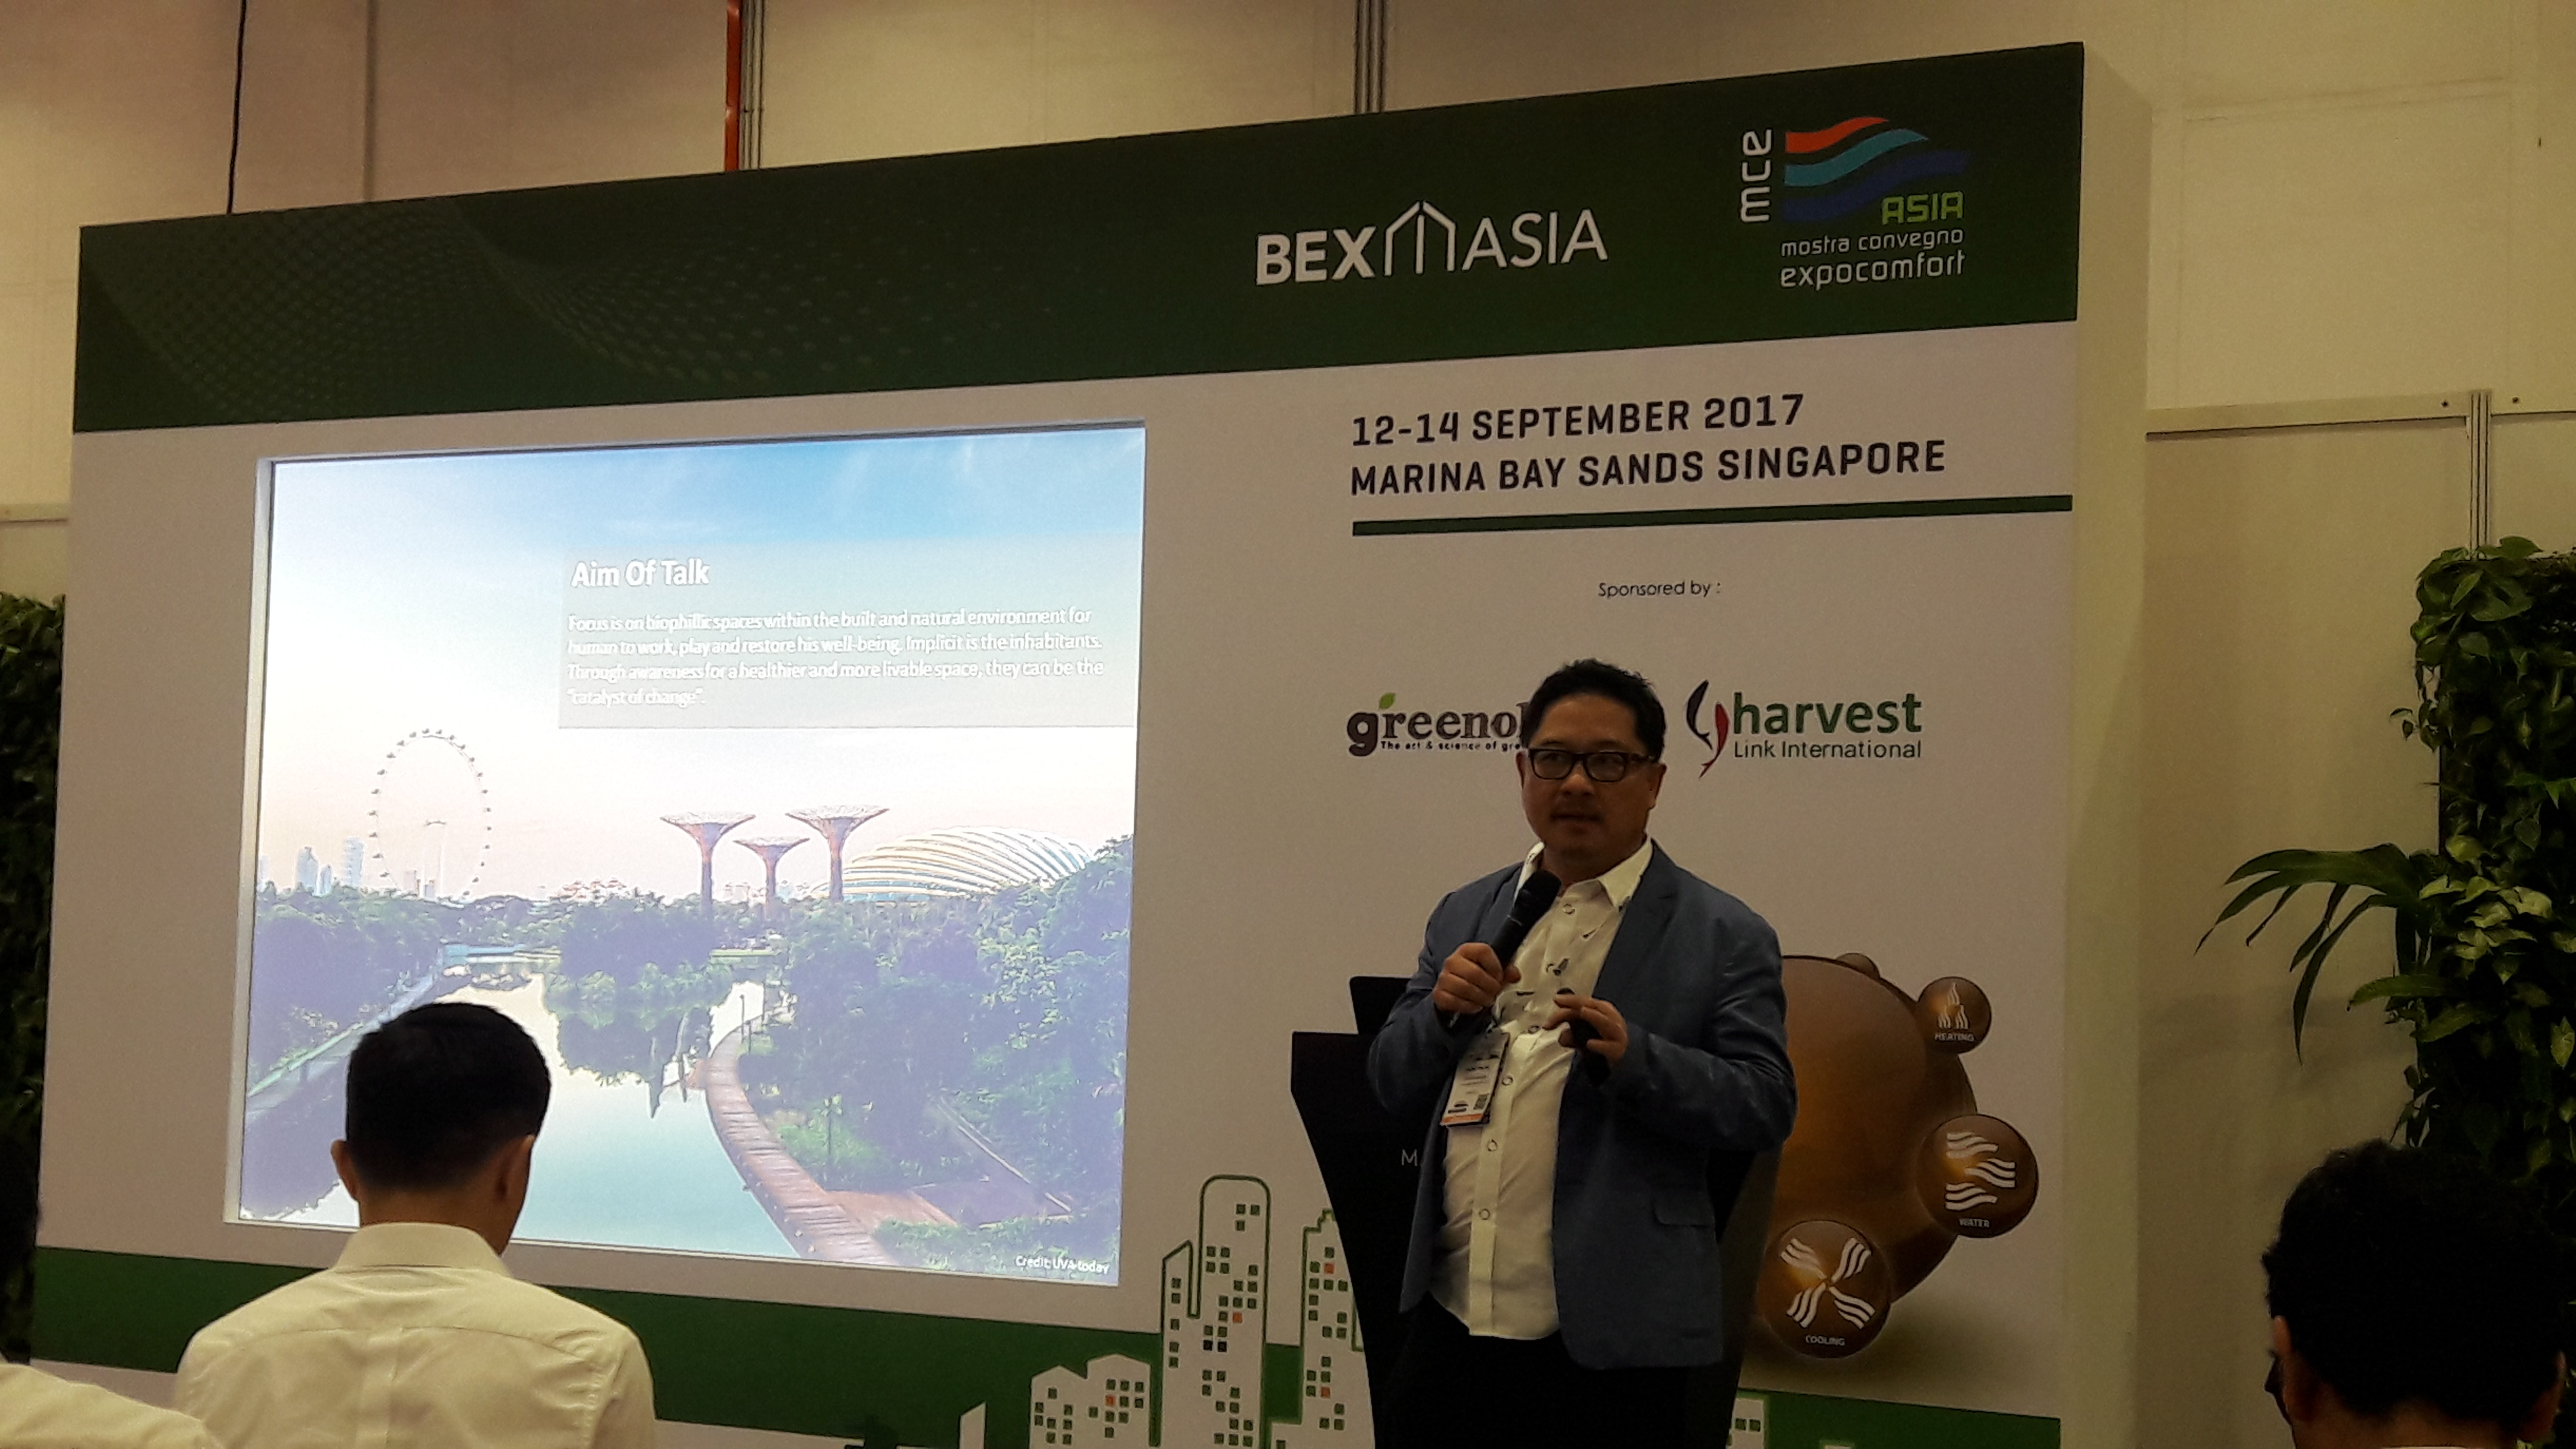 09.17.17 | UAP Singapore Chapter supports Bex Asia 2017